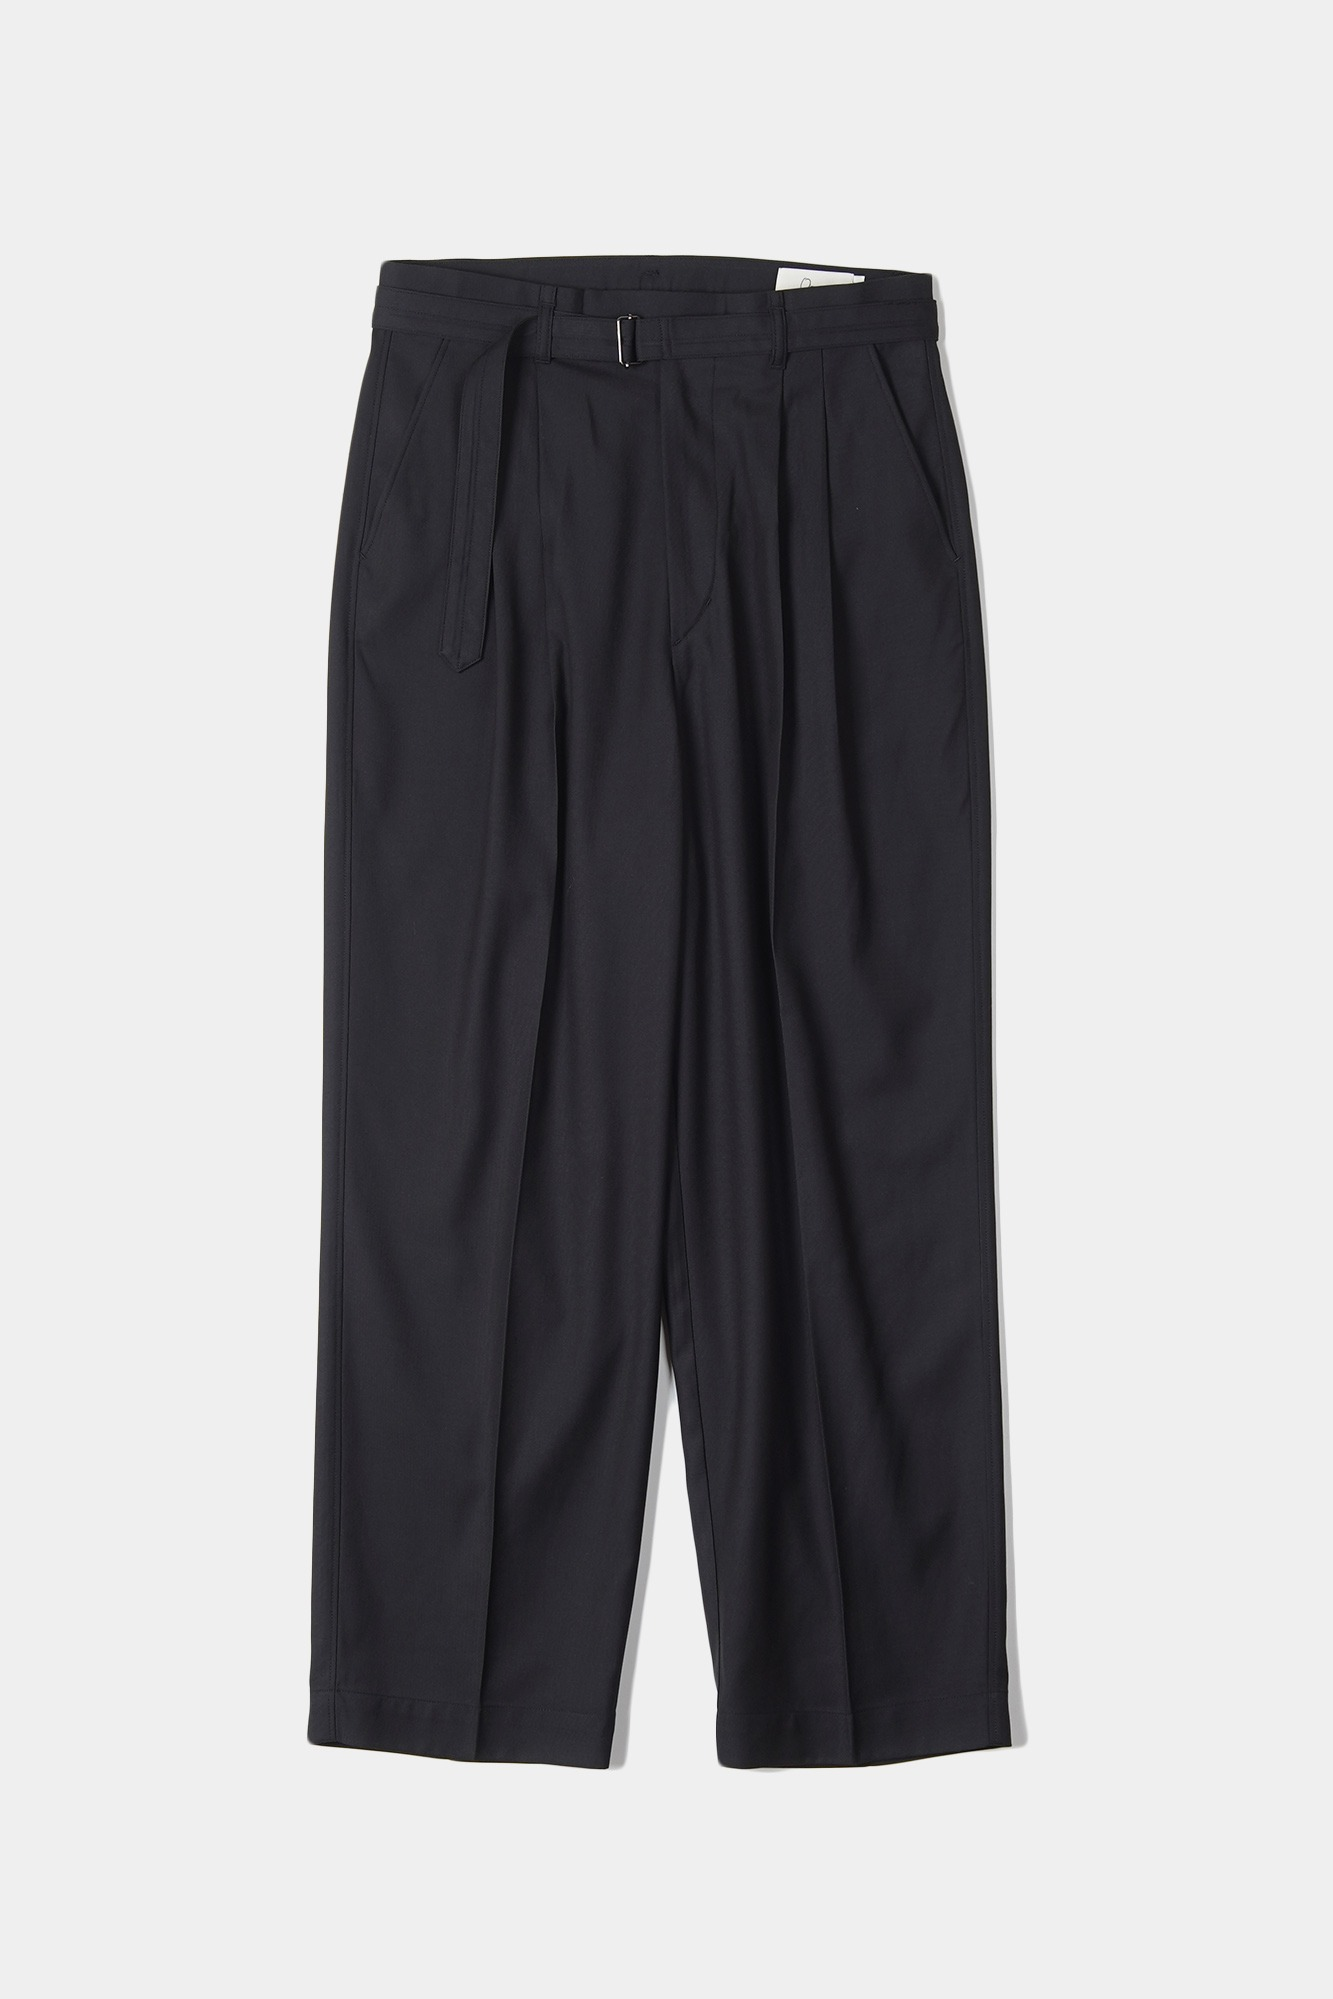 "OOPARTS Loose-fit belted pants ""Cola"""